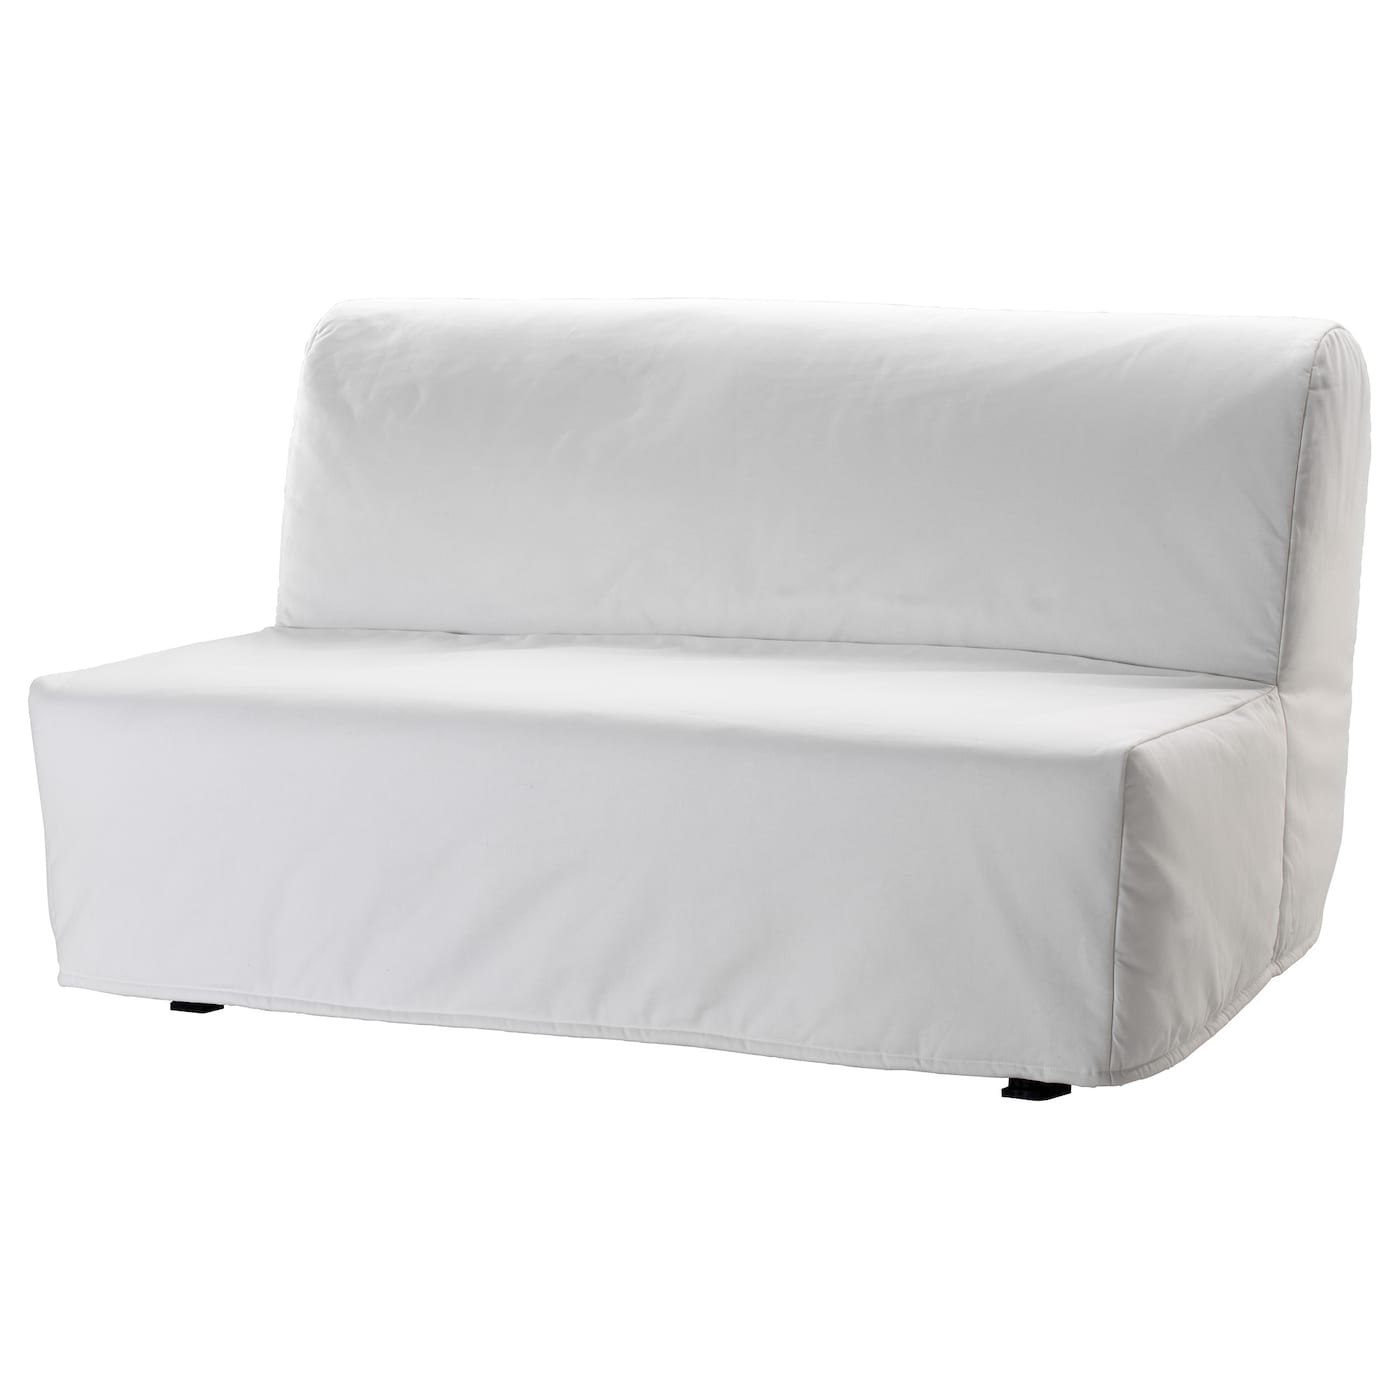 lycksele two seat sofa bed cover ransta white ikea. Black Bedroom Furniture Sets. Home Design Ideas